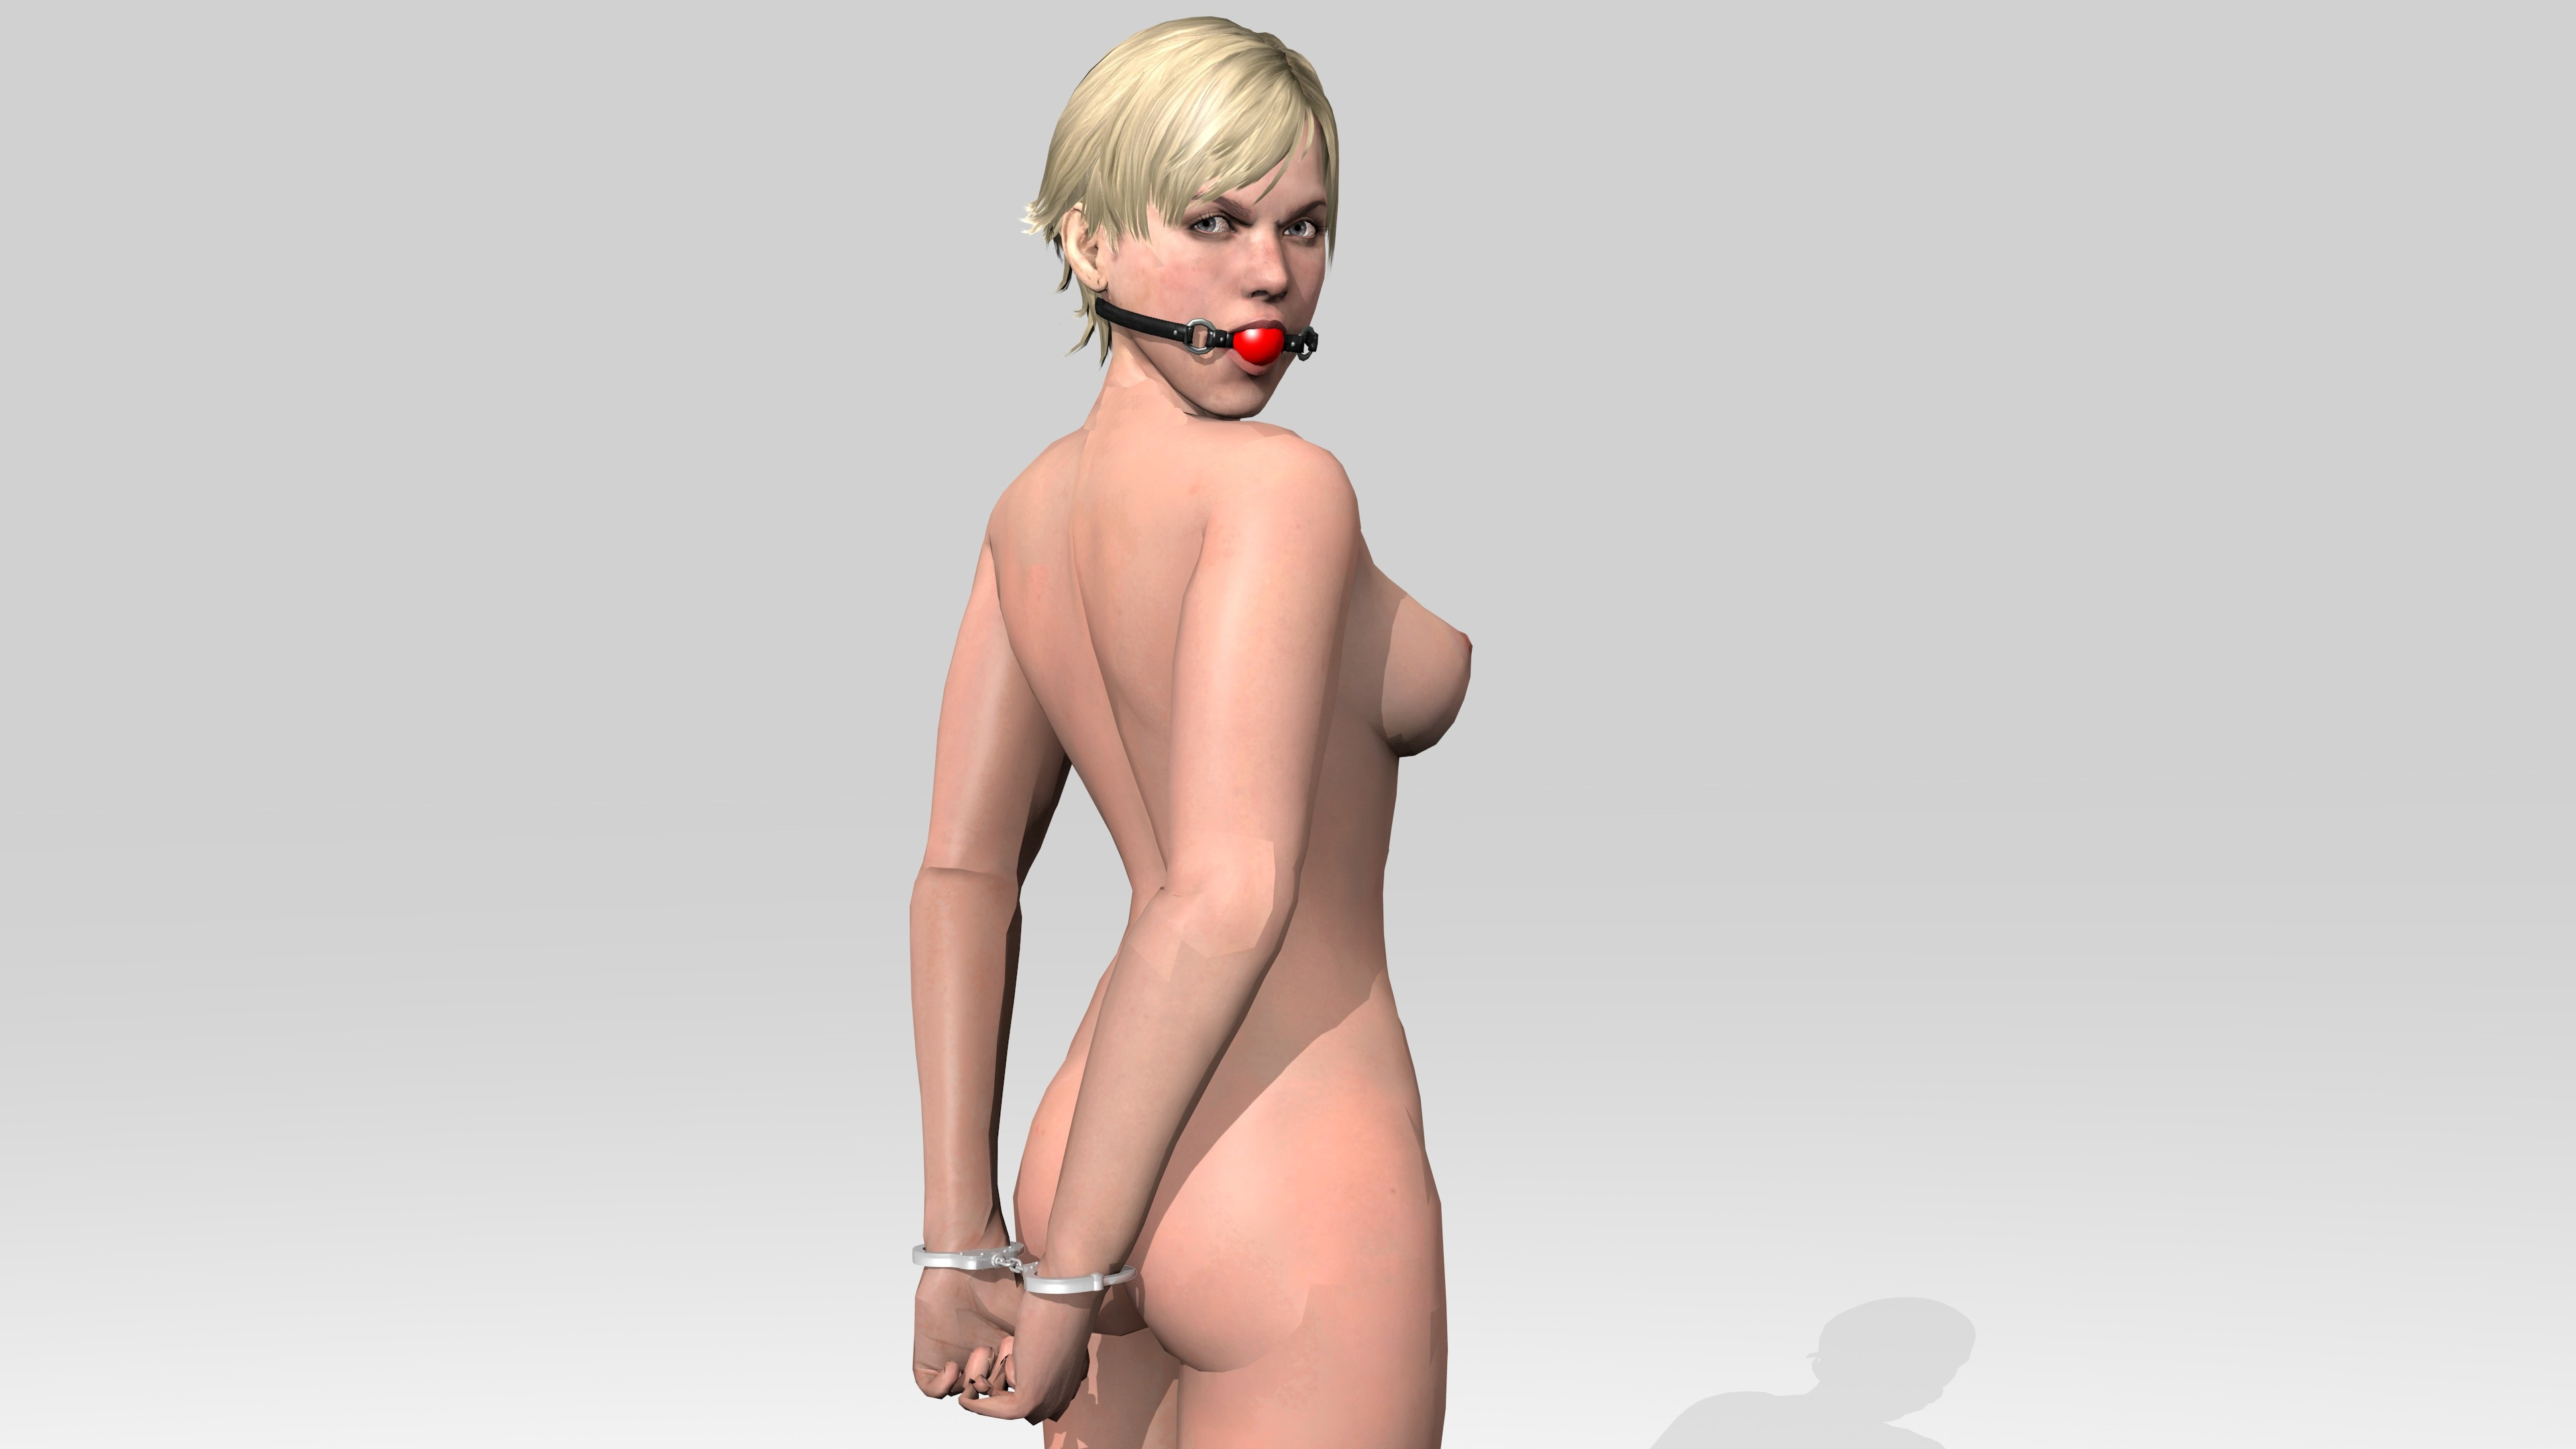 Sherry birkin resident evil porn adult gallery